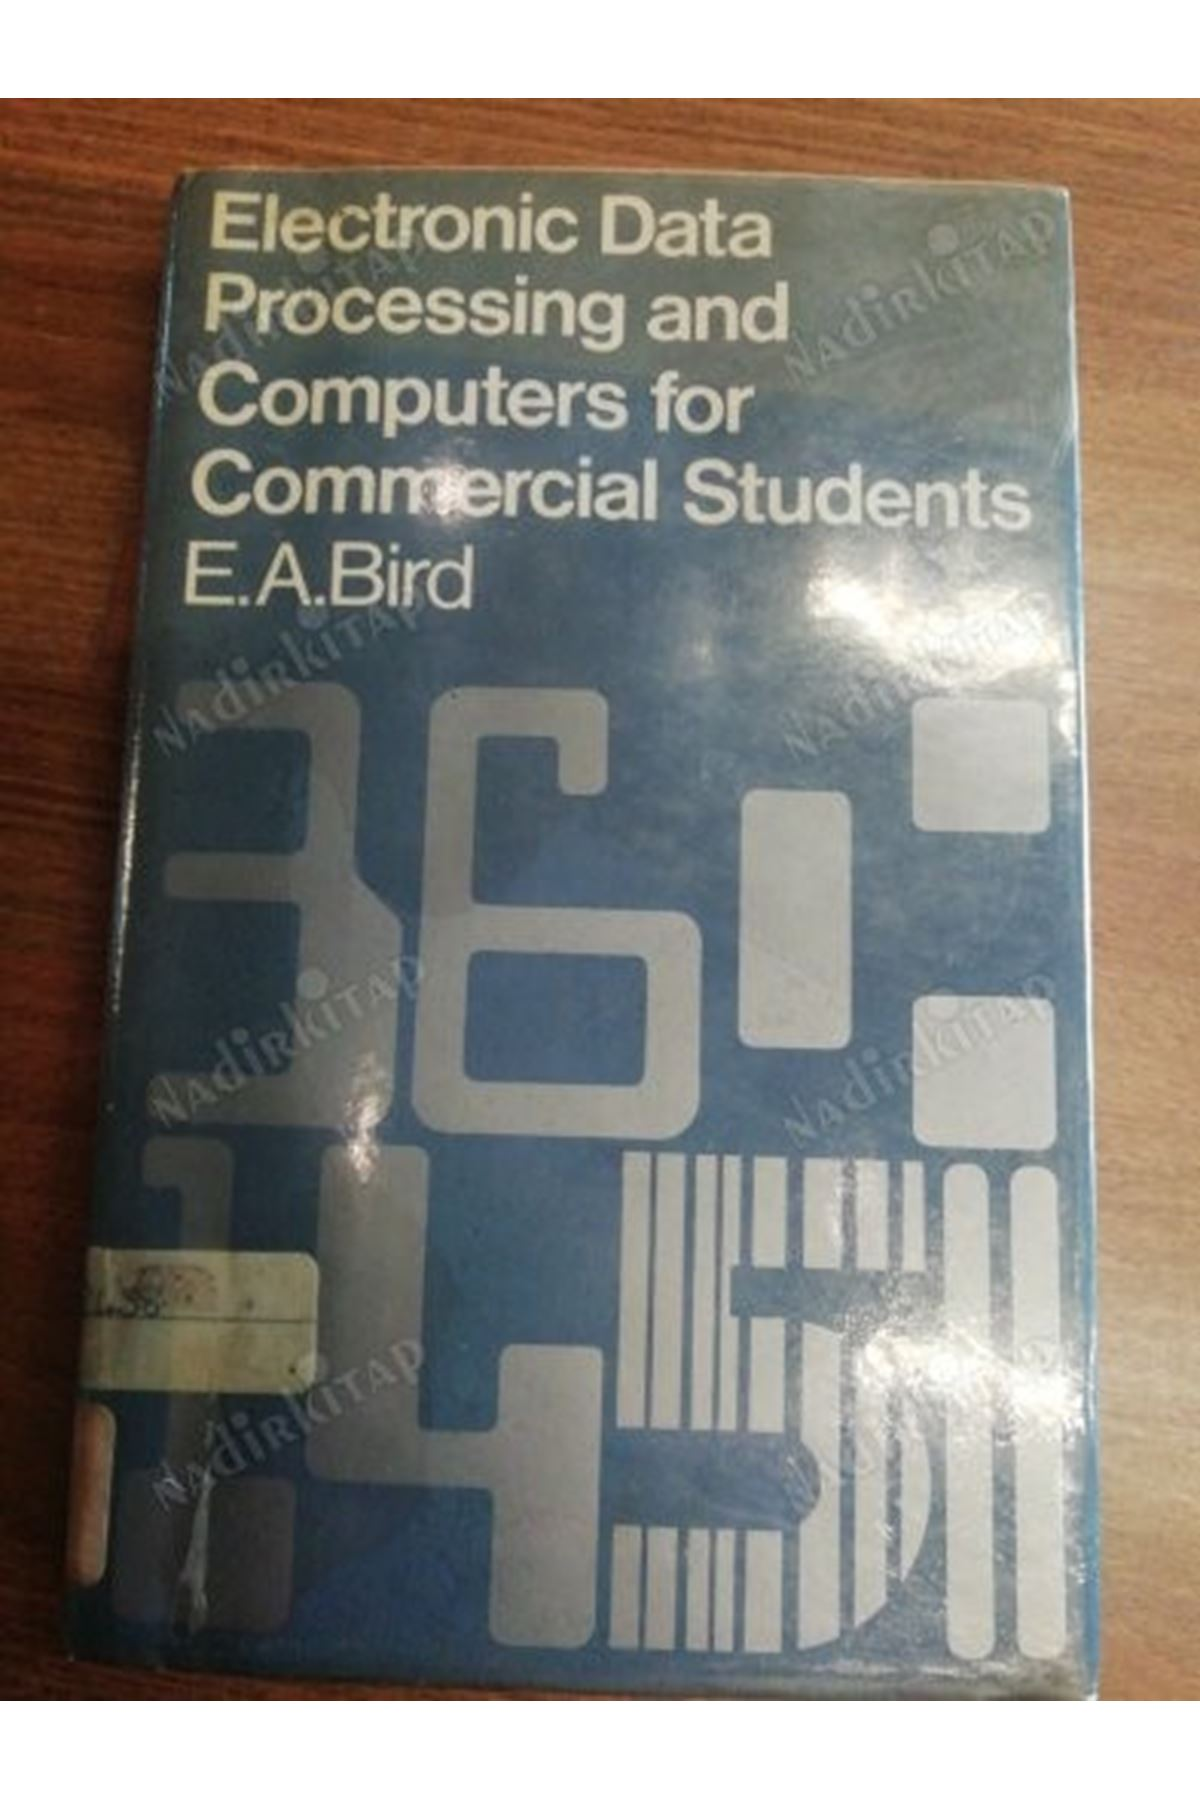 E.A.BİRD - ELECTRONIC DATA PROCESSING AND COMPUTERS FOR COMMERCIAL STUDENTS